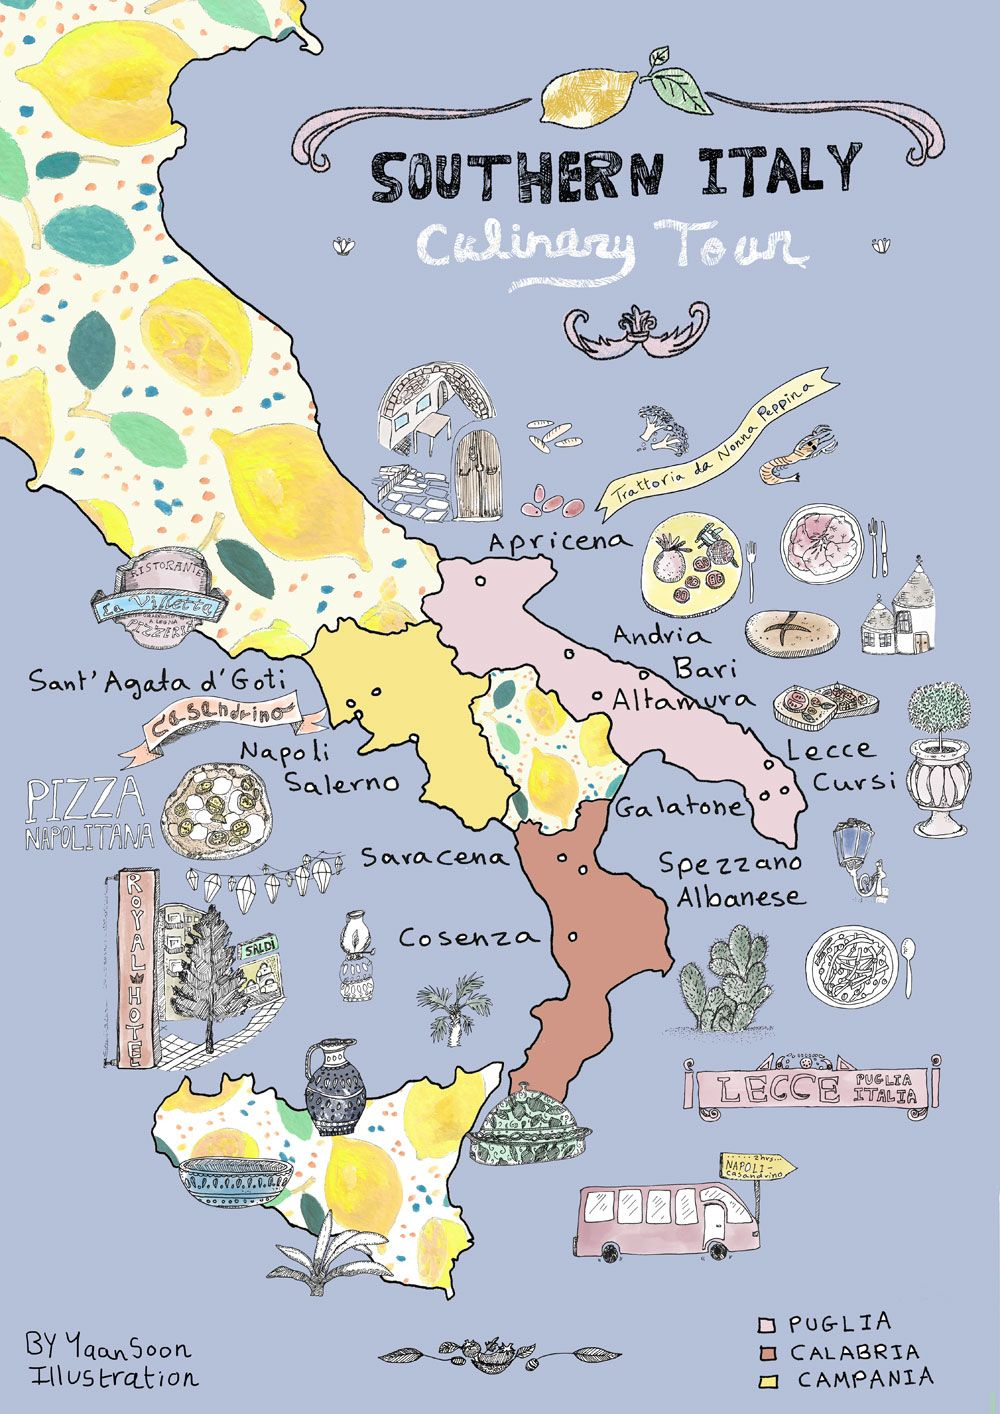 Italy culinary tour southern italy illustrated map illustrated check out this southern italy illustrated map by mediterranean illustrator yaansoon featuring exciting italian culinary gumiabroncs Image collections